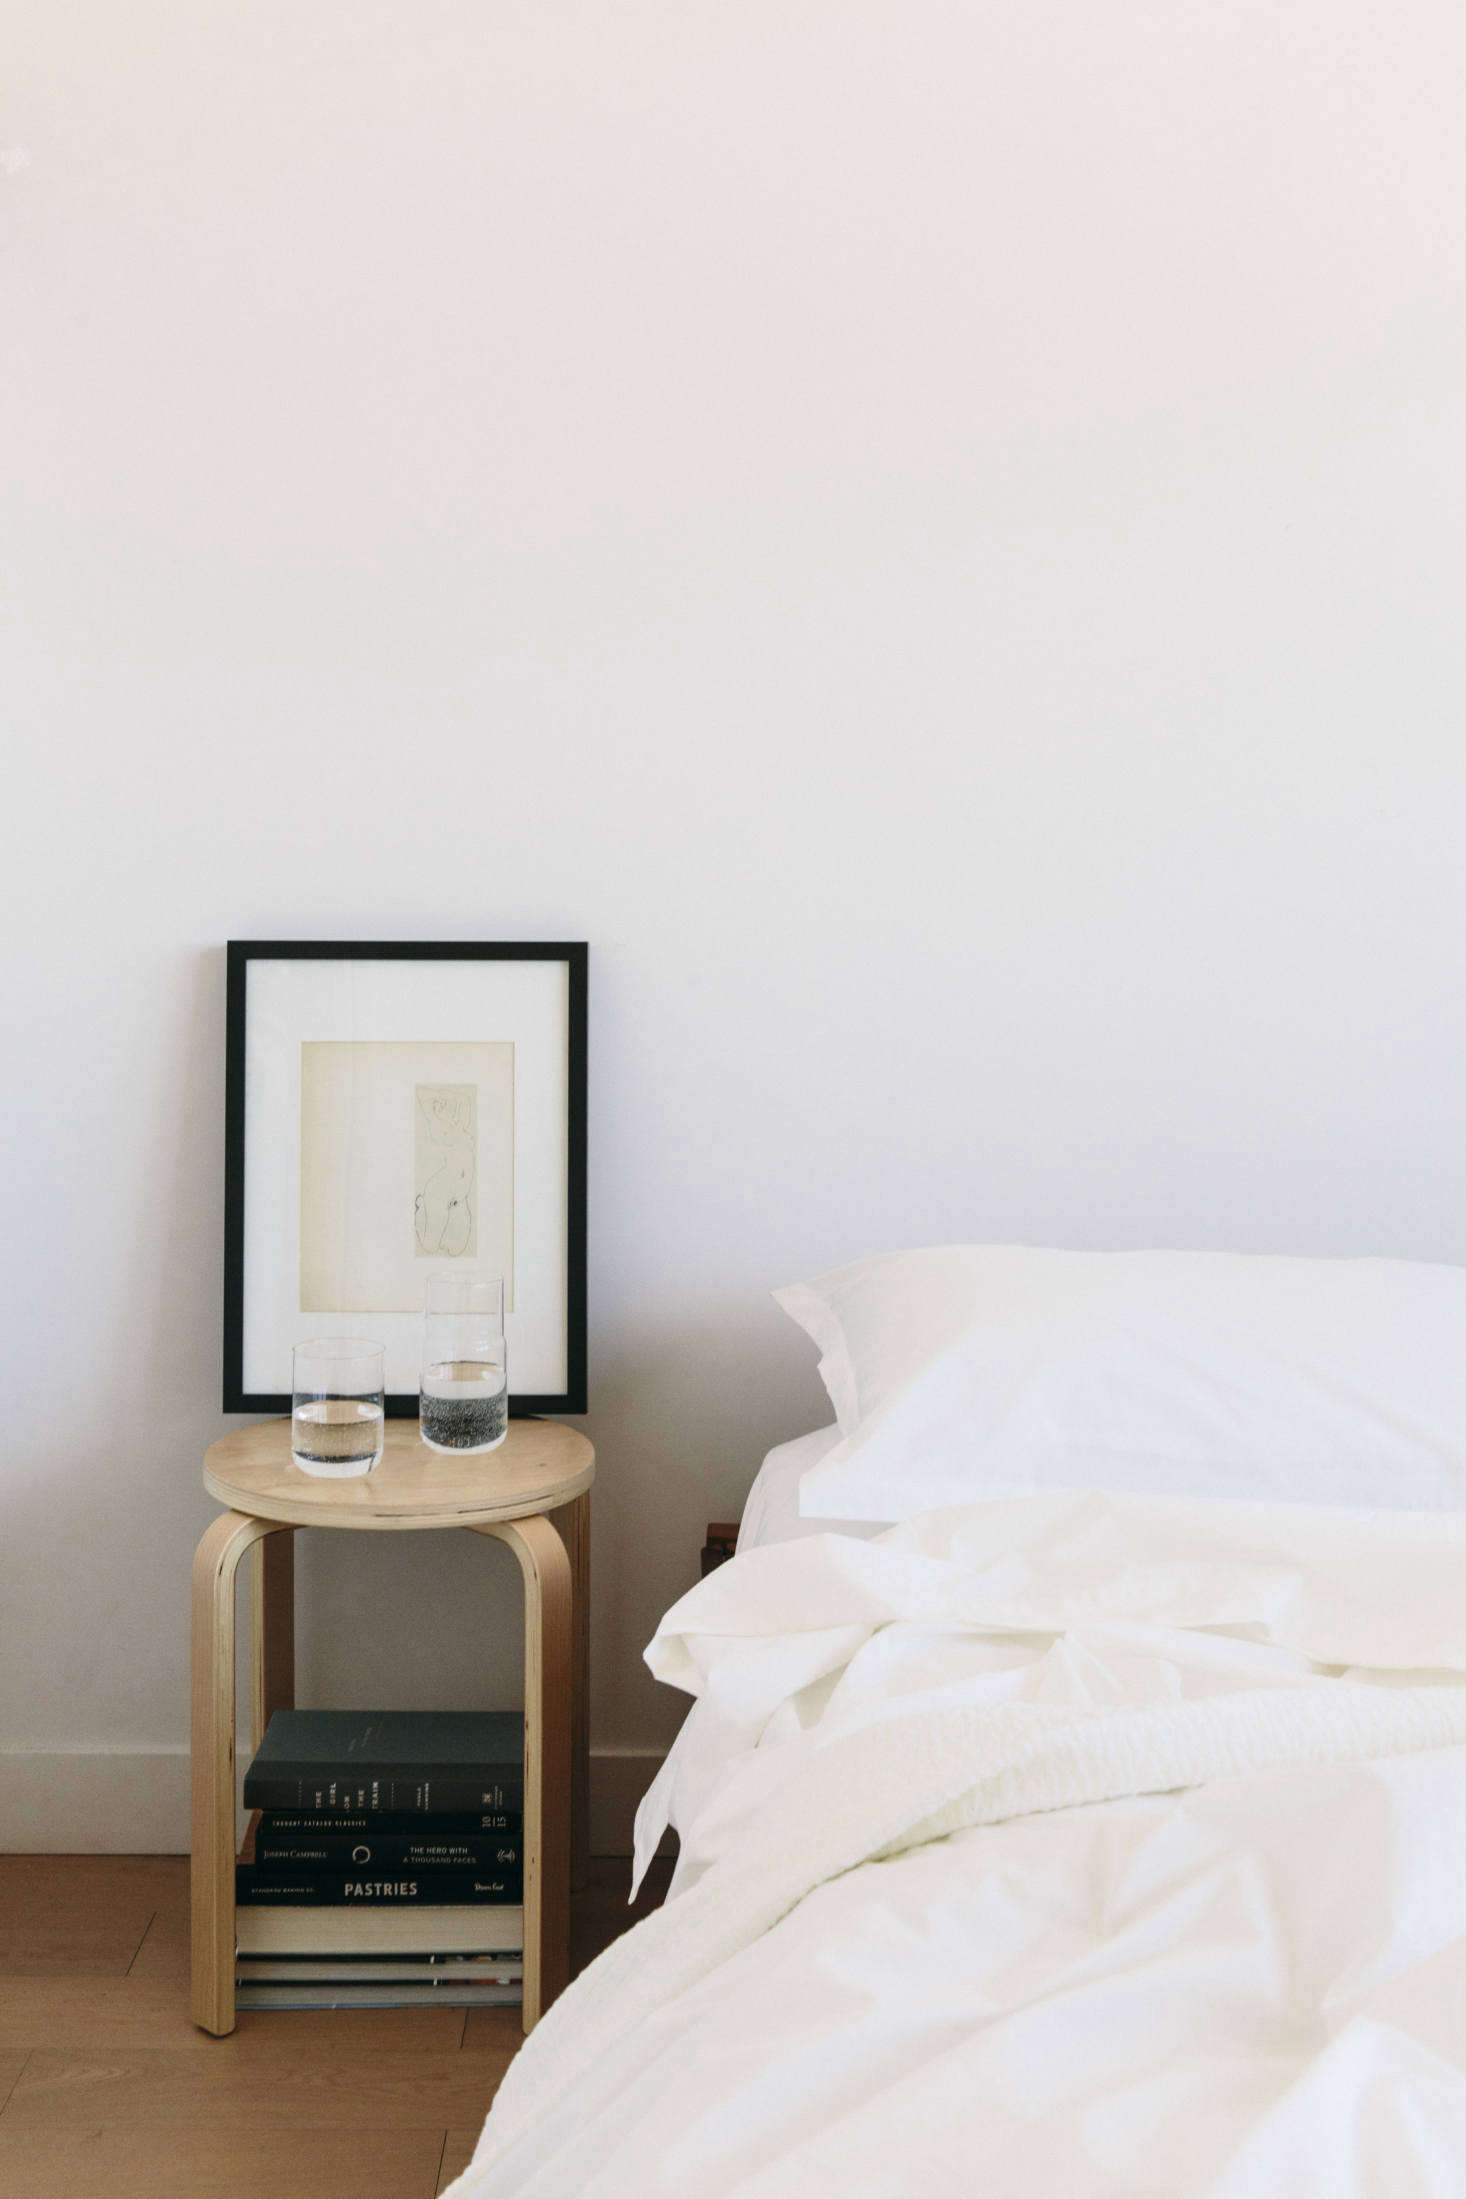 The sheets stand up to sleep as well as hours in bed spent writing—and reading.